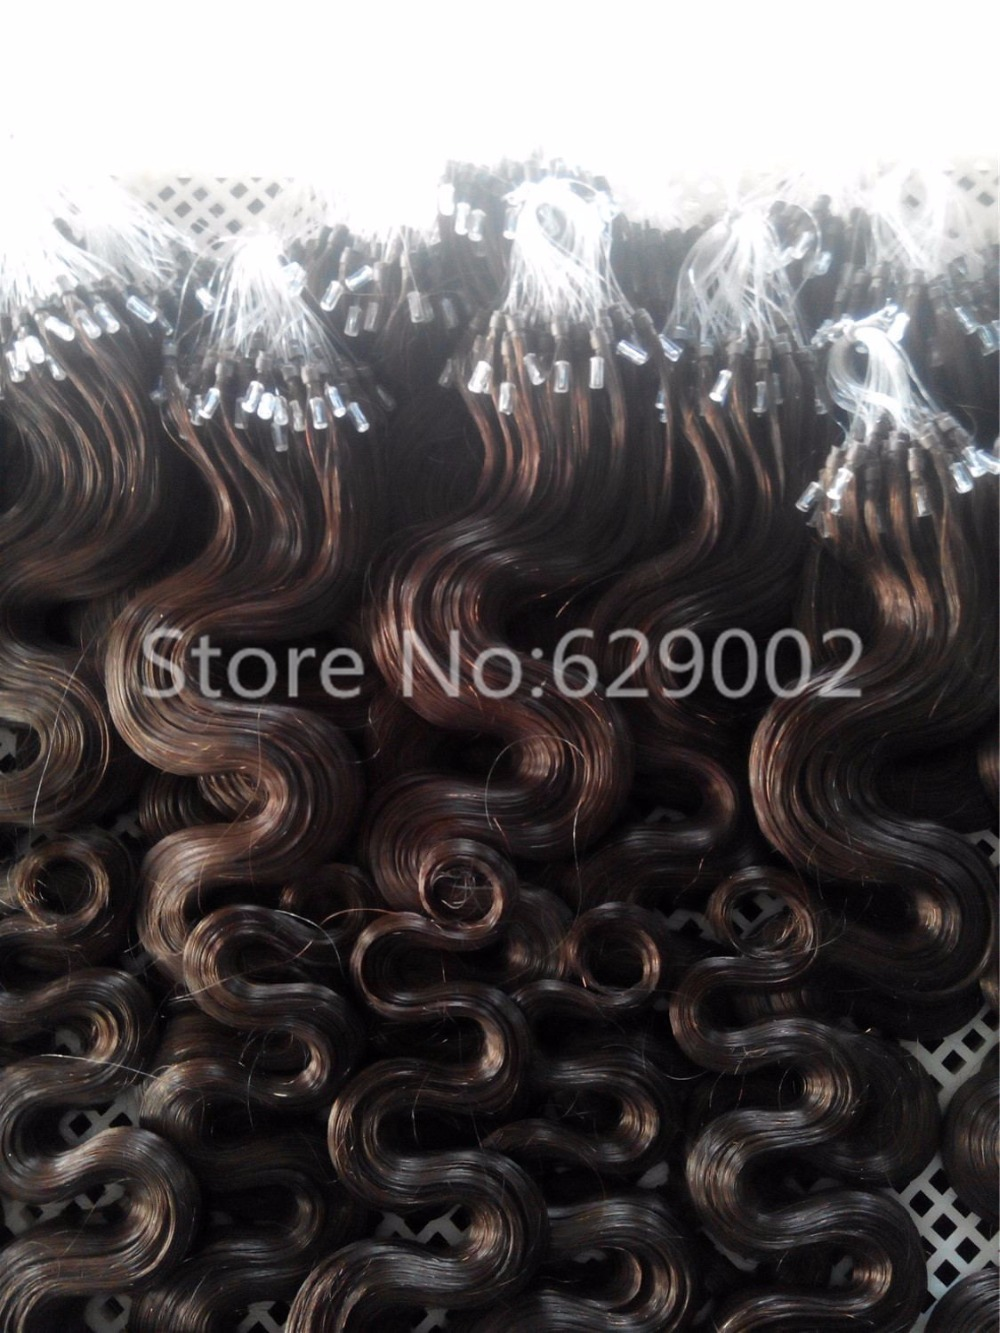 Cheap 100S Wavy Remy Micro Loop Hair Extensions 1g/s 7A Brazilian Body Wave Virgin Micro Ring Hair Extensions Natural Black Hair(China (Mainland))